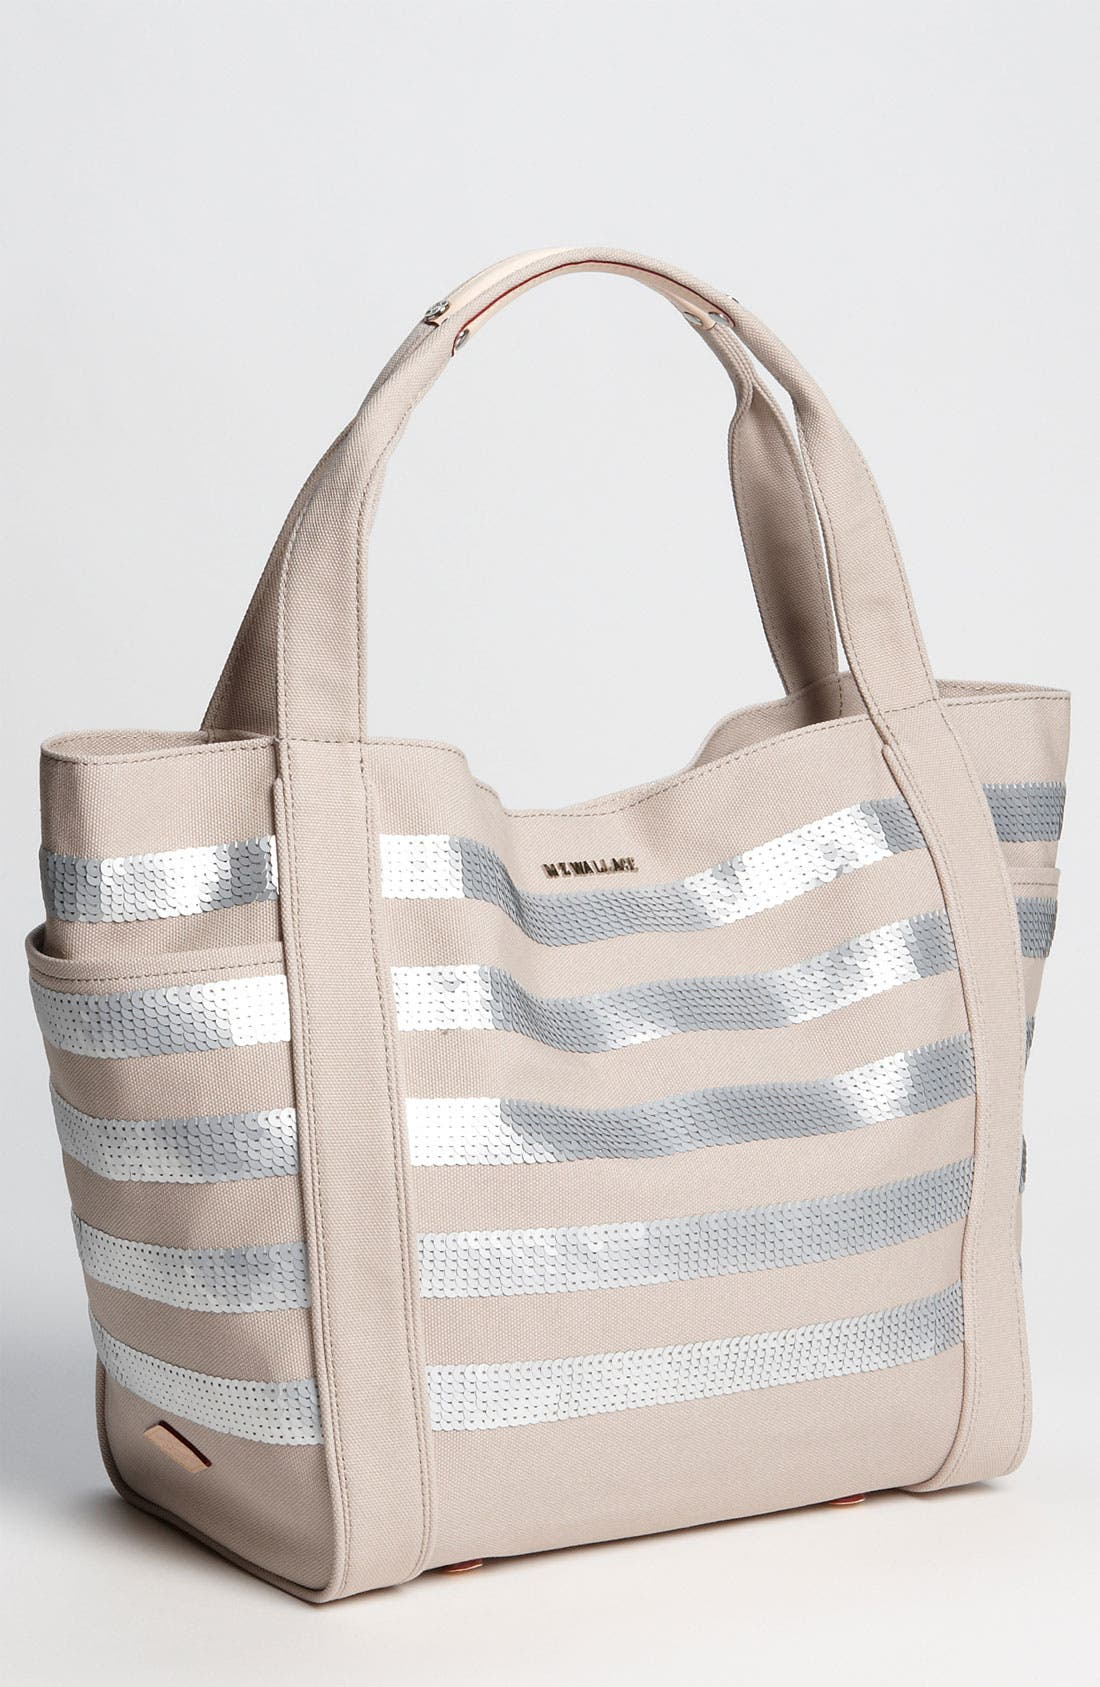 Main Image - MZ Wallace 'Ava' Sequined Canvas Tote